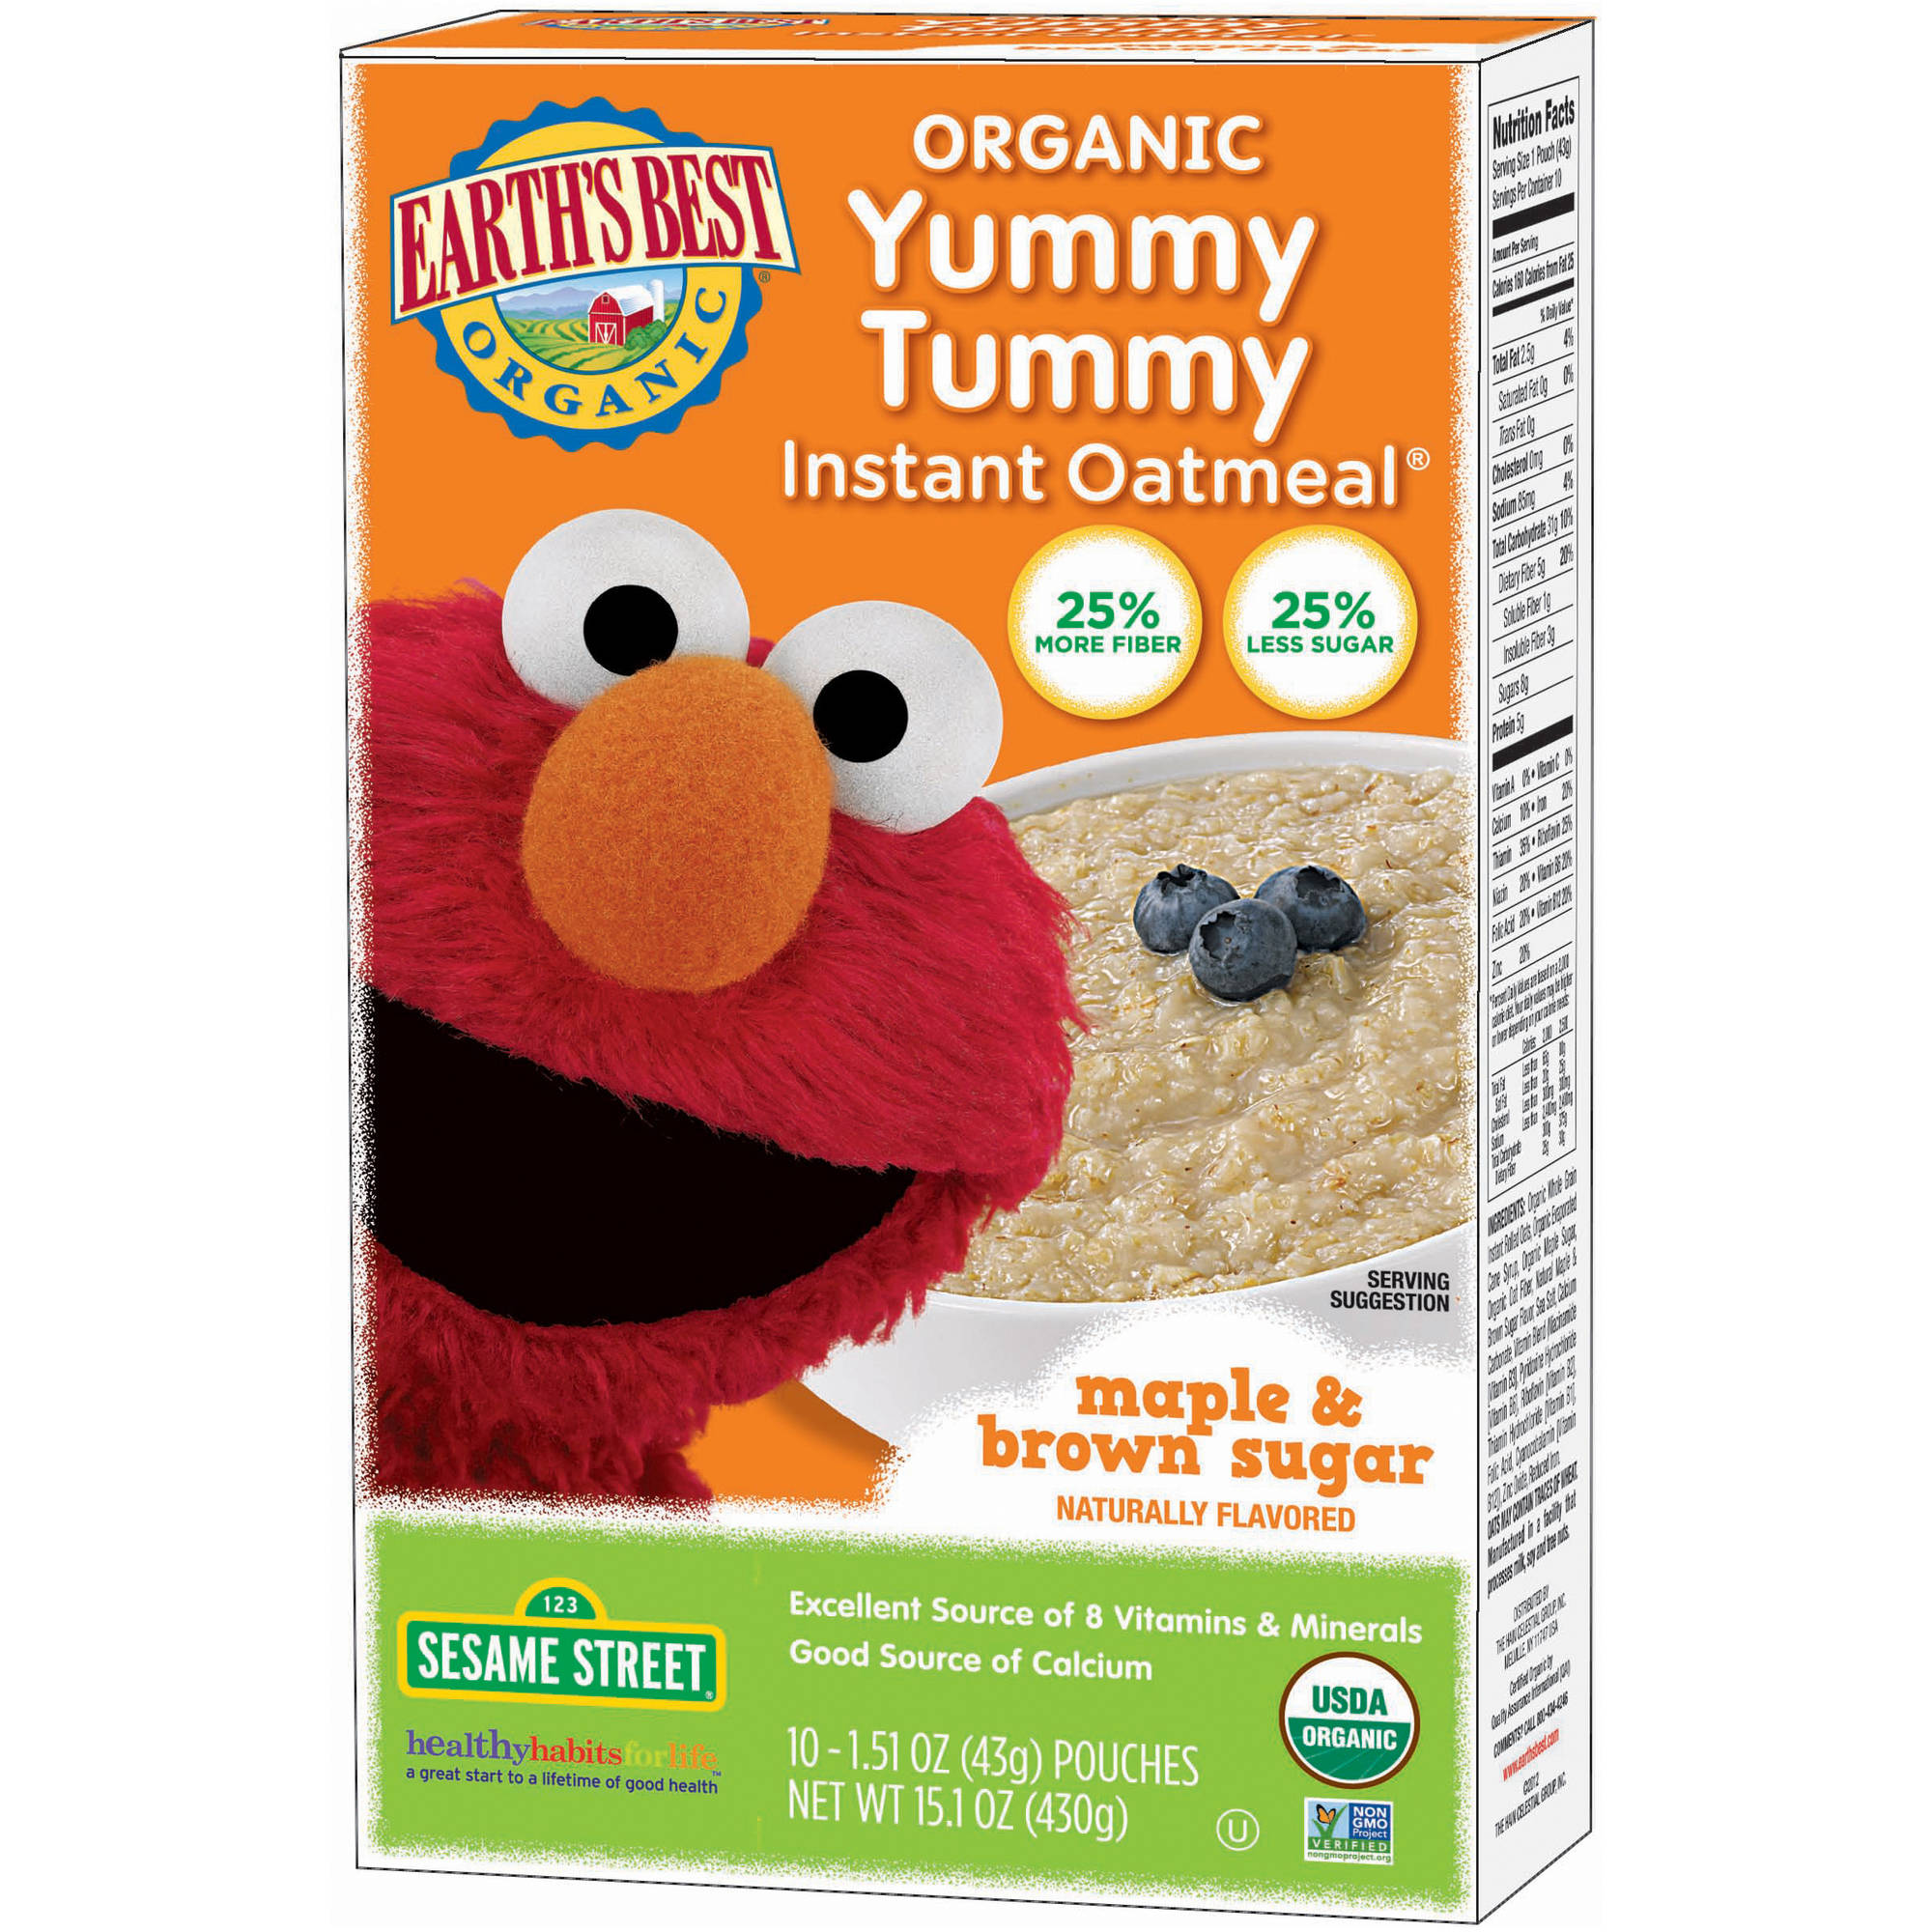 Earth's Best Sesame Street Yummy Tummy Organic  Maple & Brown Sugar Instant Oatmeal, 1.51 oz, 10 count